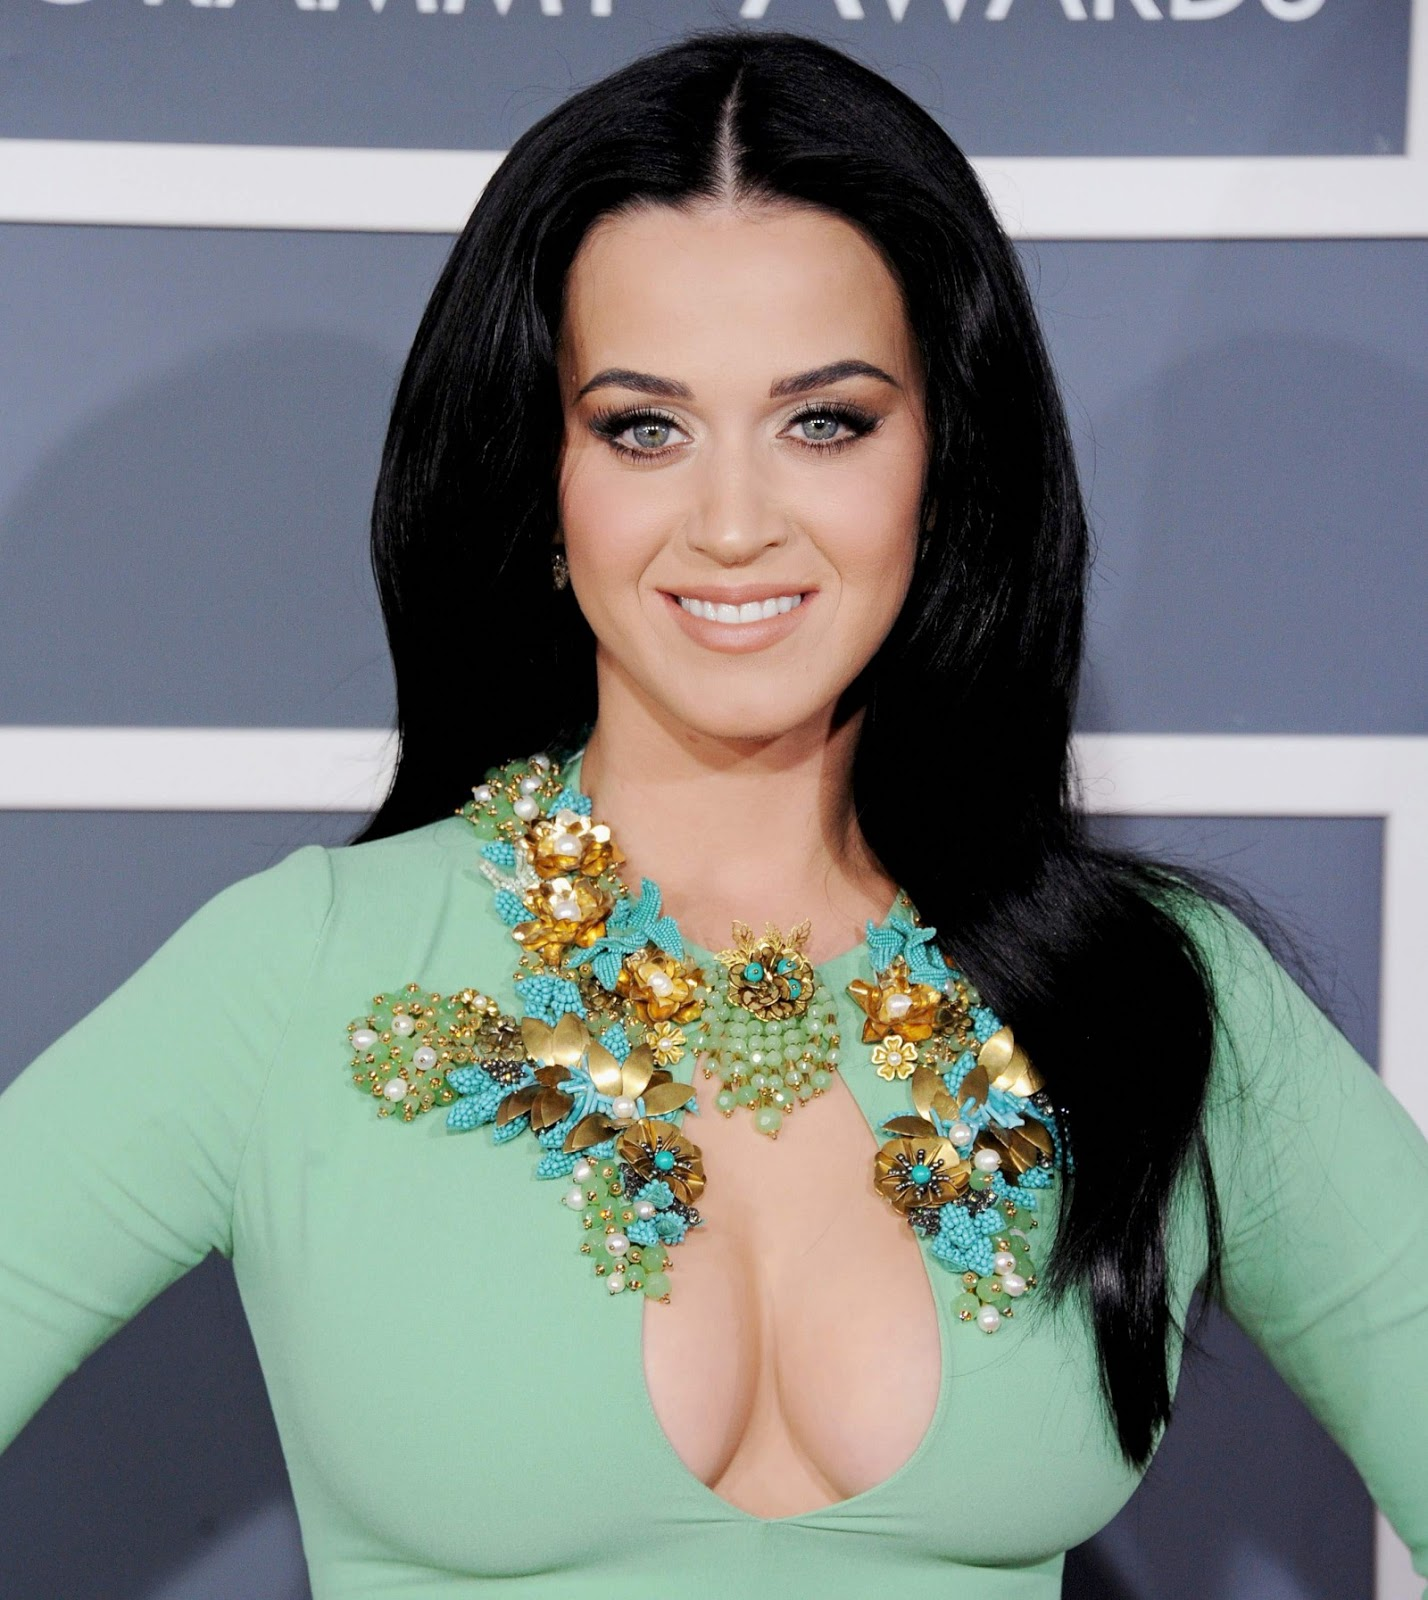 Katy Perry: High Quality Bollywood Celebrity Pictures: Katy Perry